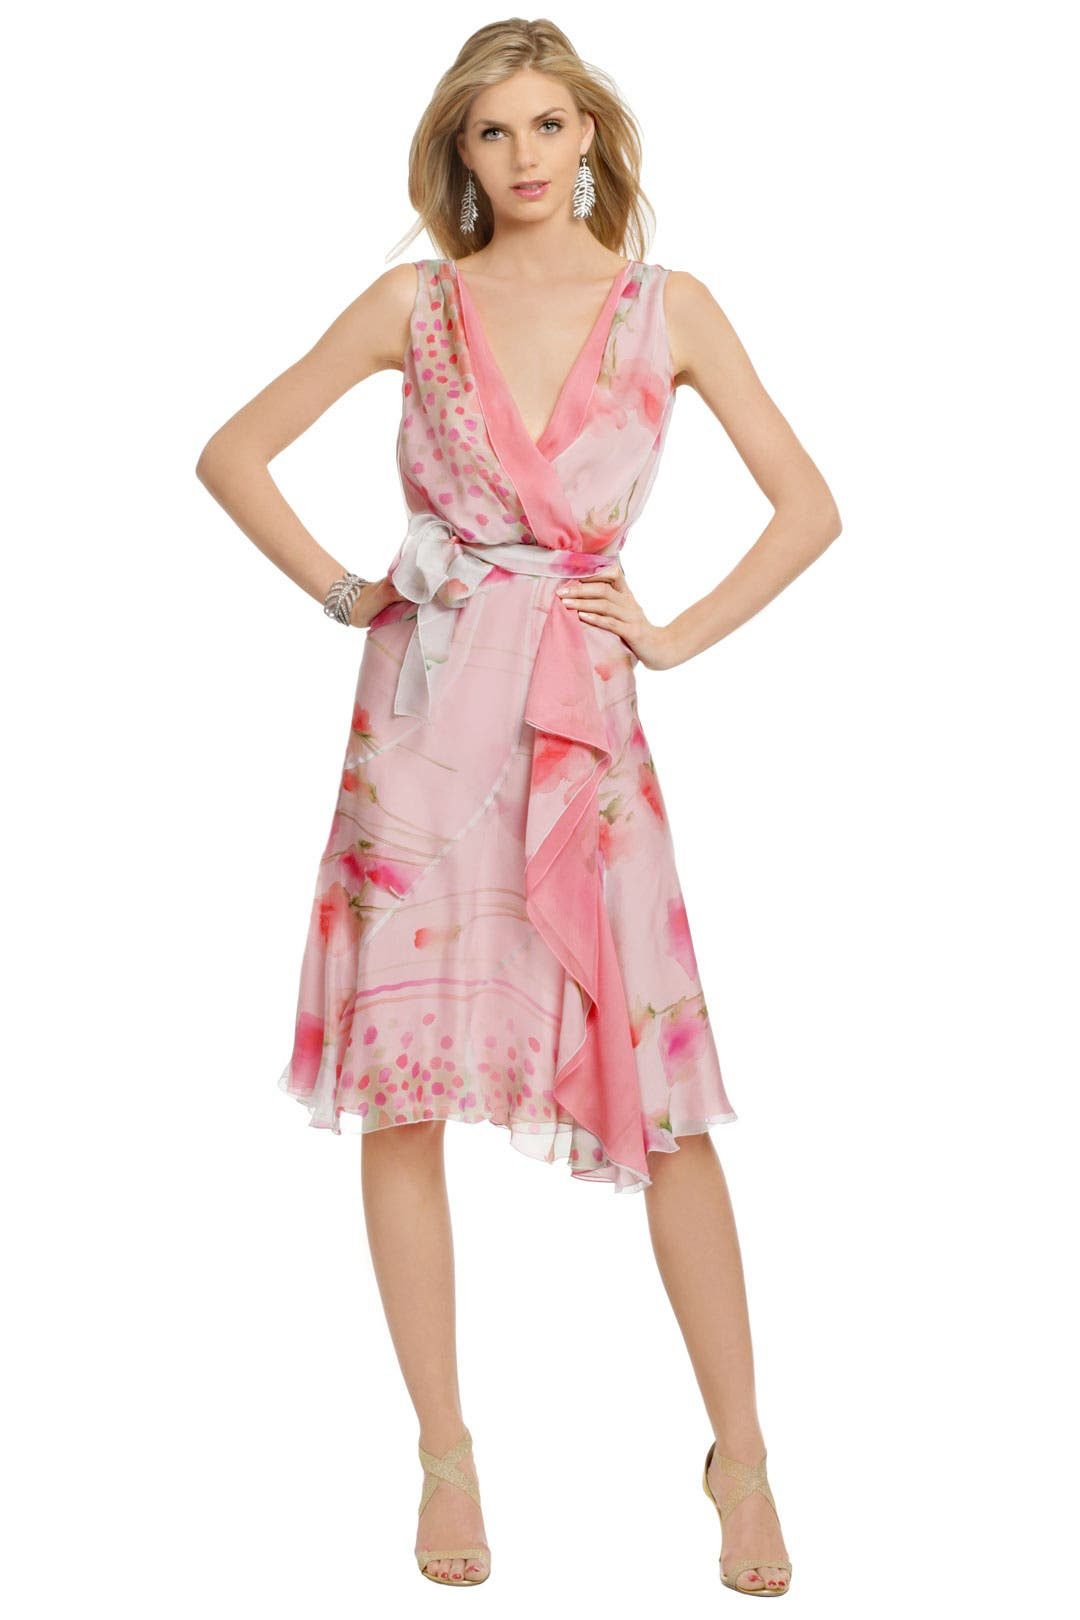 Oopsie Daisy Dress by Philosophy Di Alberta Ferretti